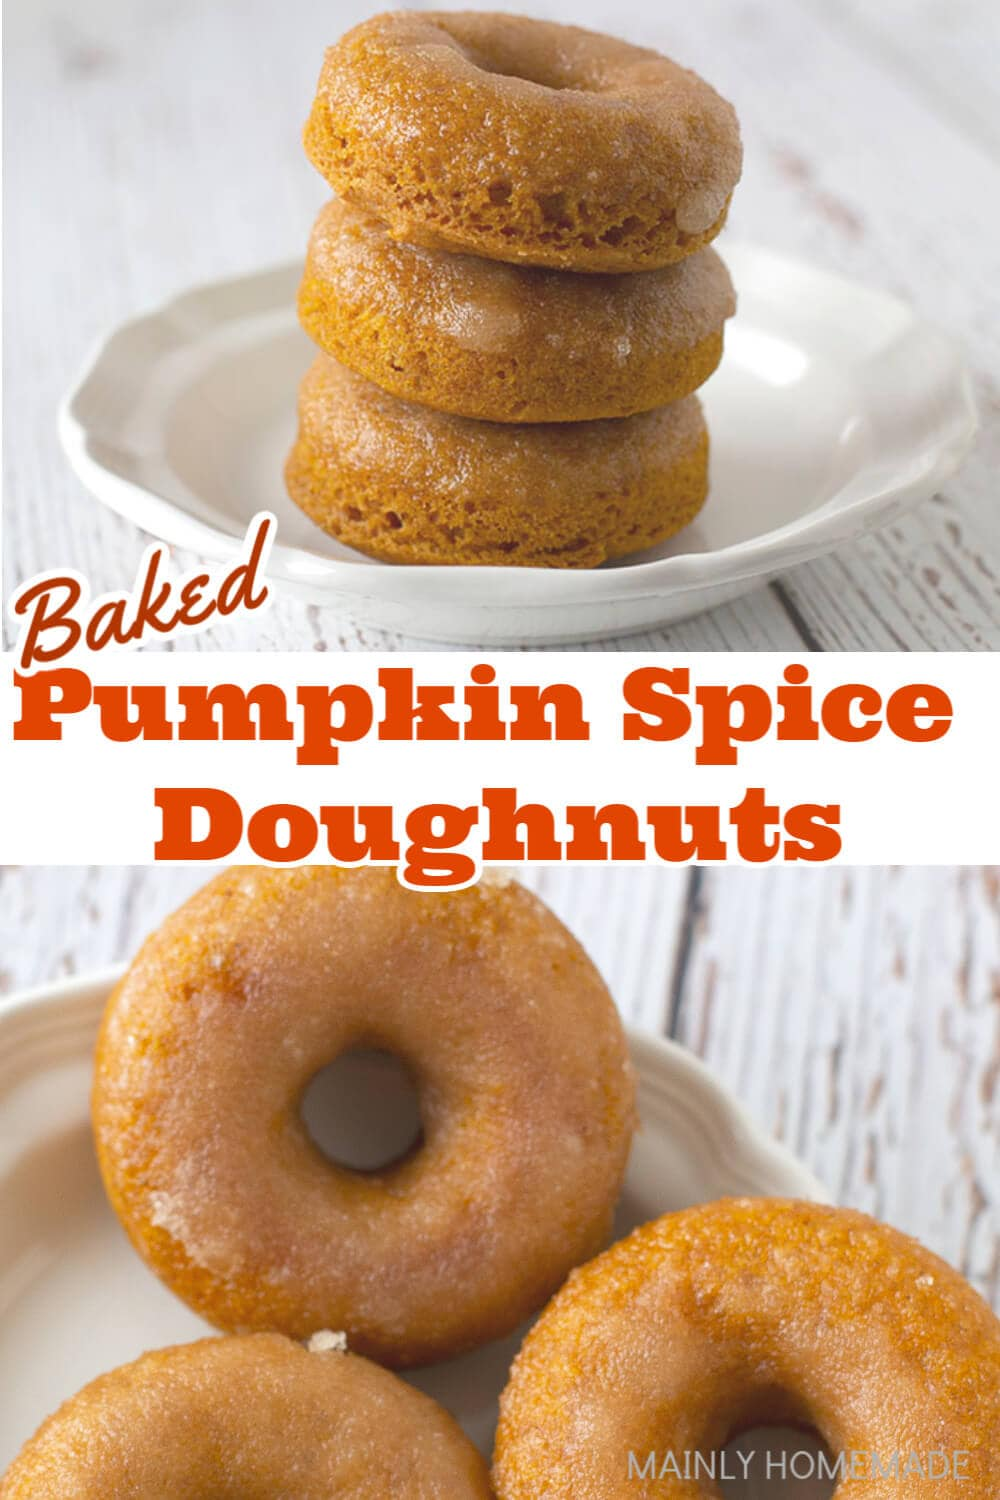 The most delicious pumpkin spice donuts you've ever had! They are moist and delicious and full of pumpkin spice flavor in one little doughnut.